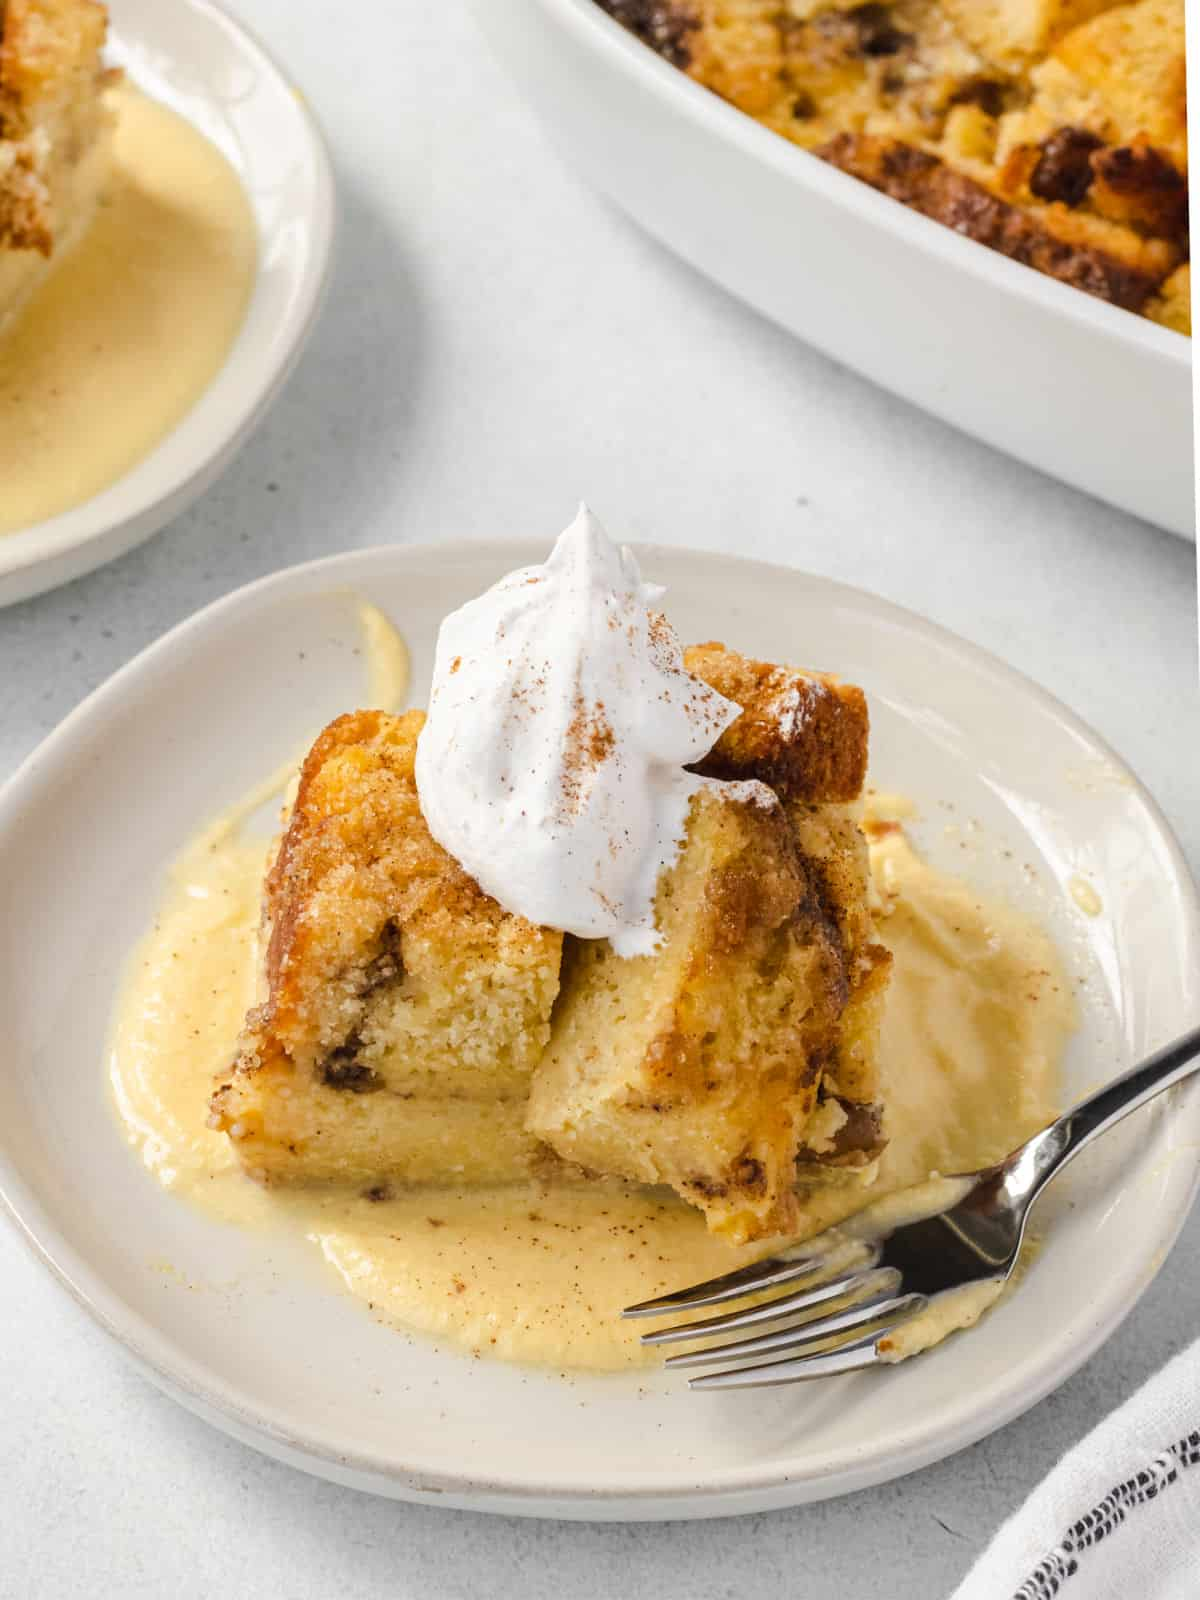 Scoop of apple bread pudding on a plate with vanilla custard and whipped cream.